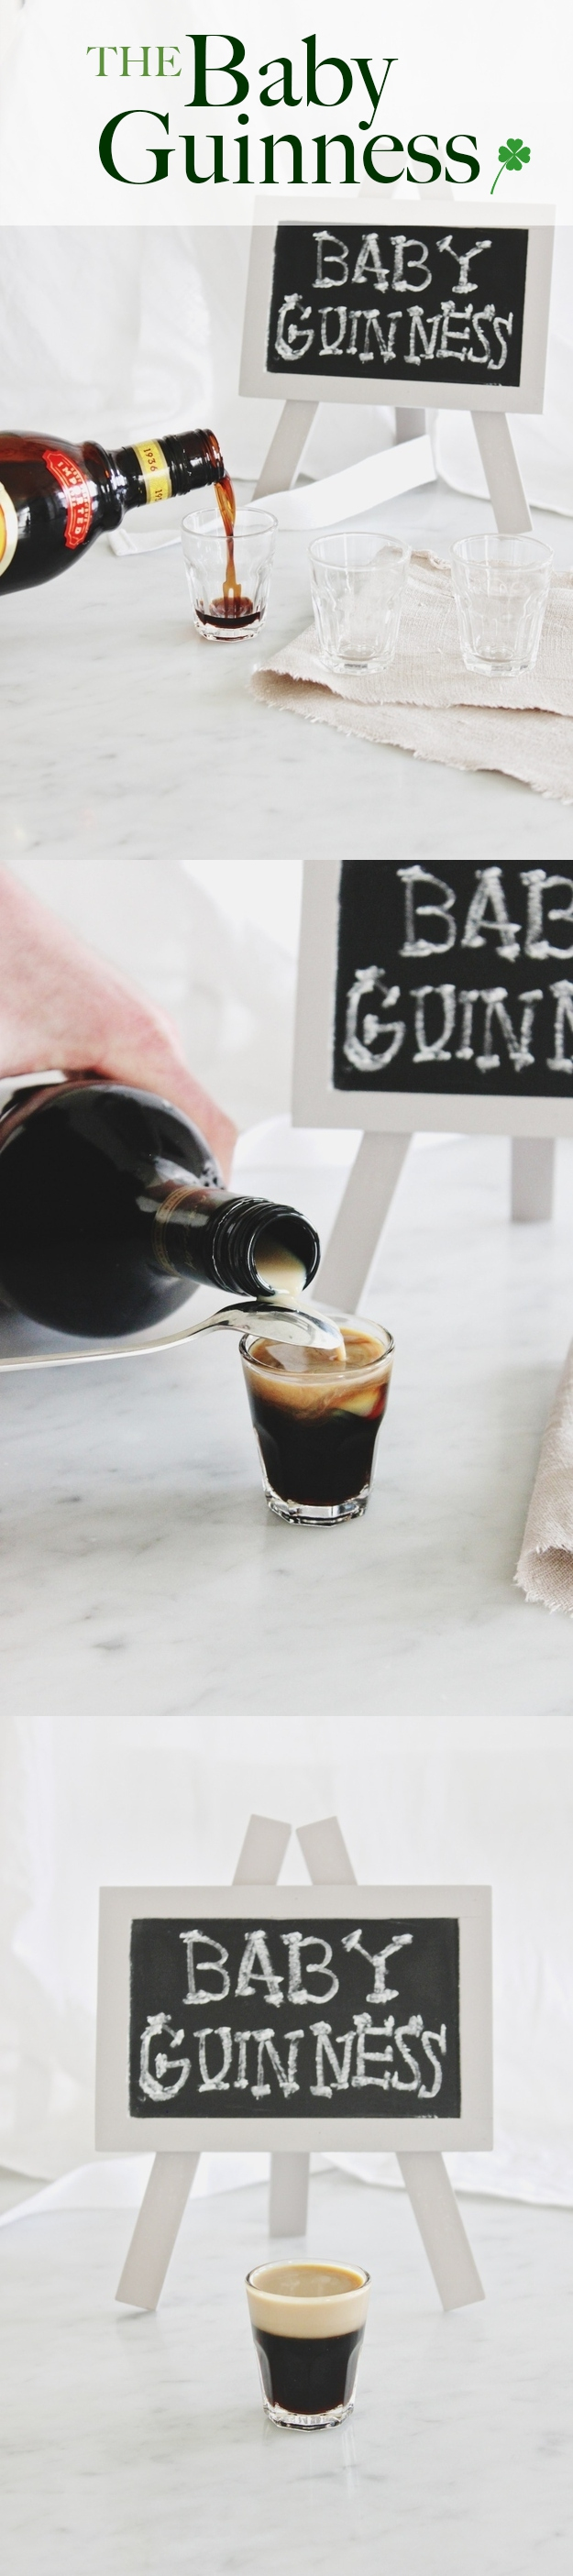 3 Delicious Drinks For St. Patrick's Day